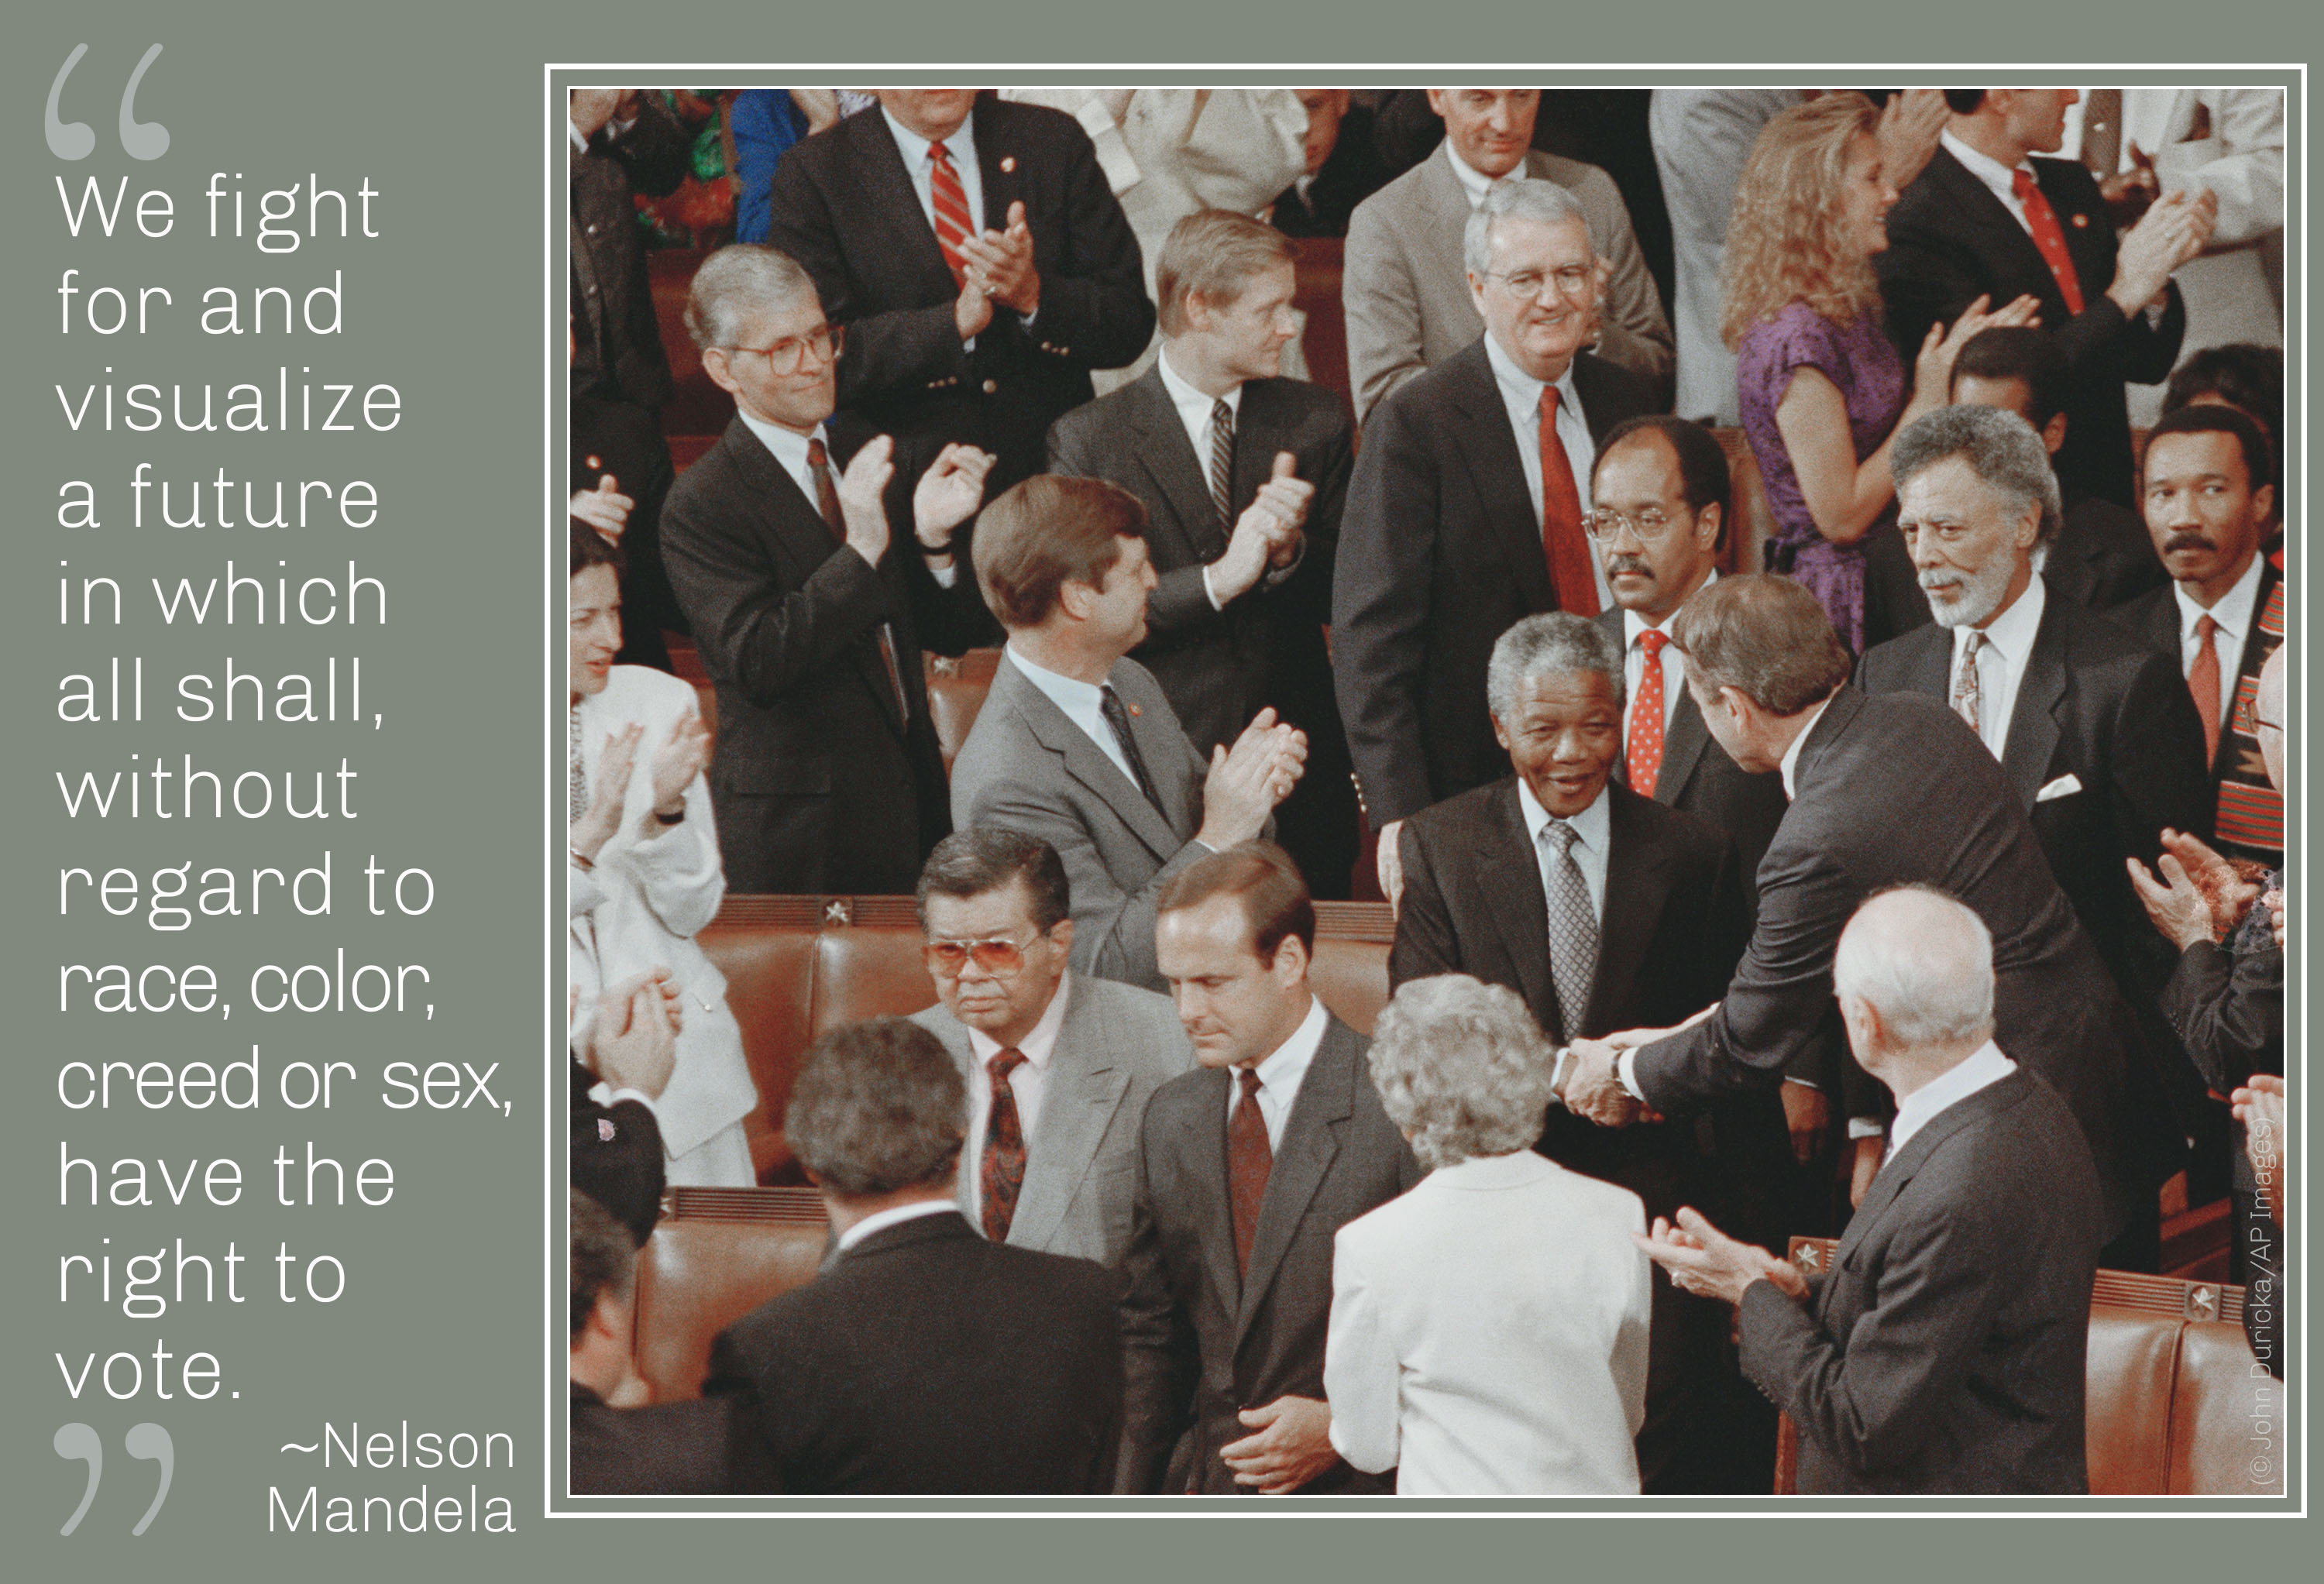 Photo of Mandela in crowd, Mandela quote about the right to vote (© John Duricka/AP Images)